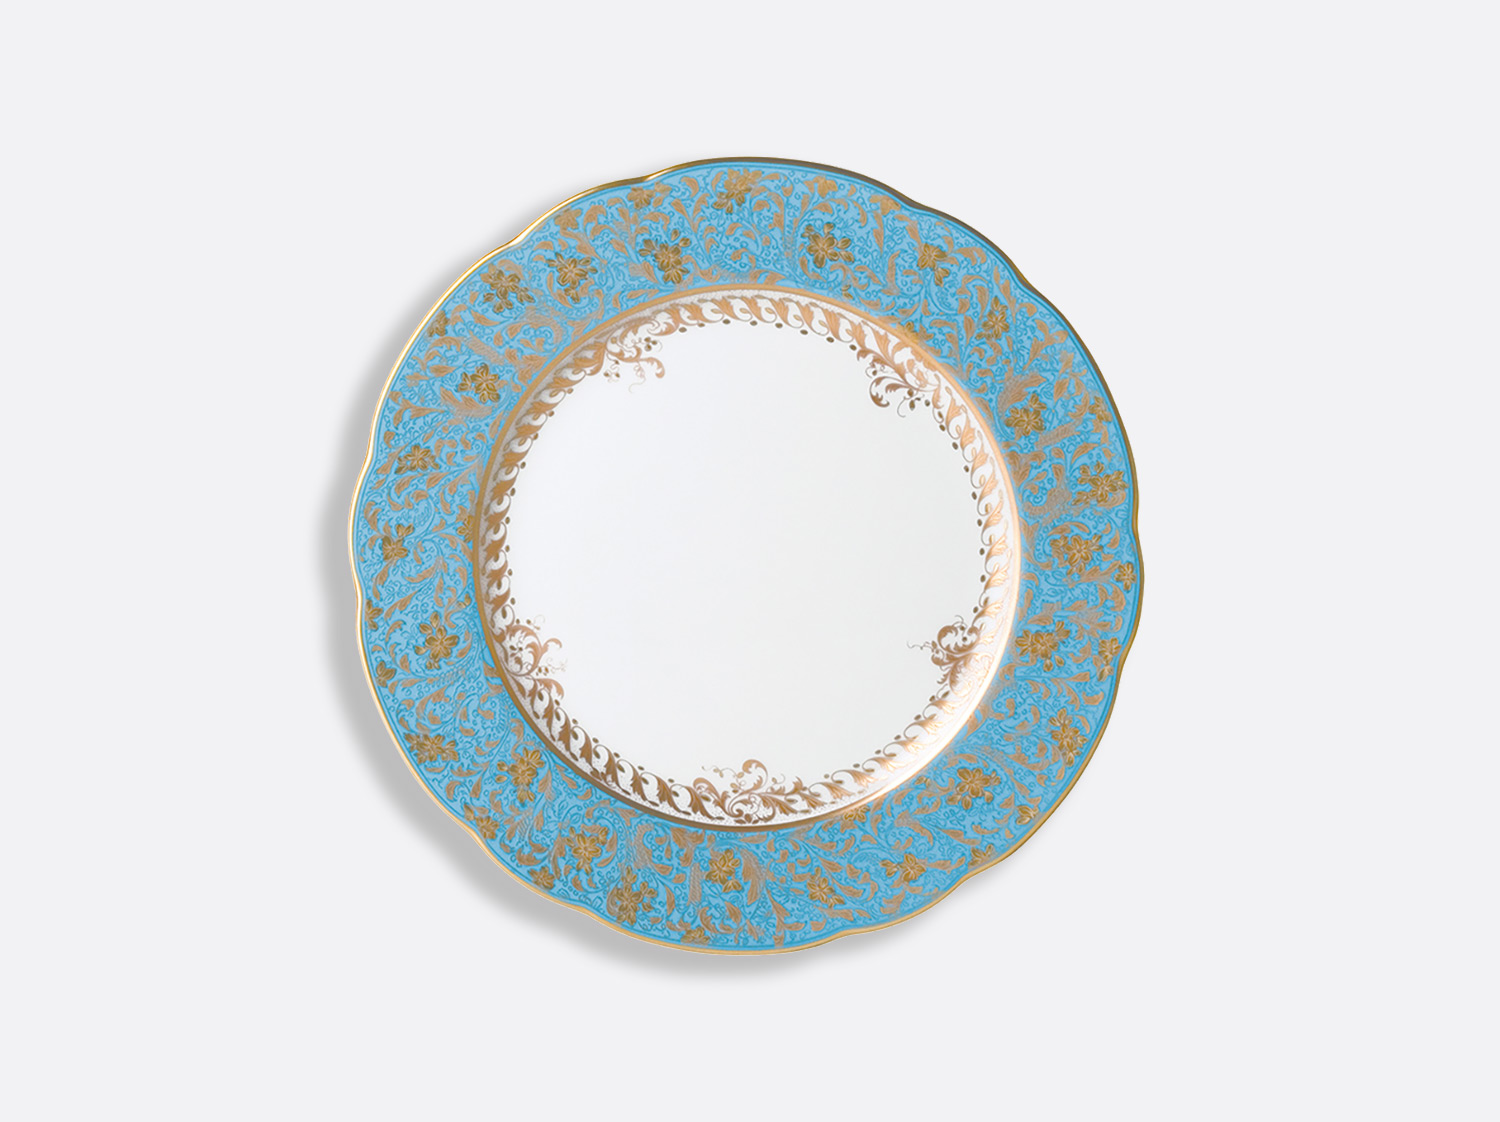 China Dinner plate 26 cm of the collection Eden turquoise | Bernardaud